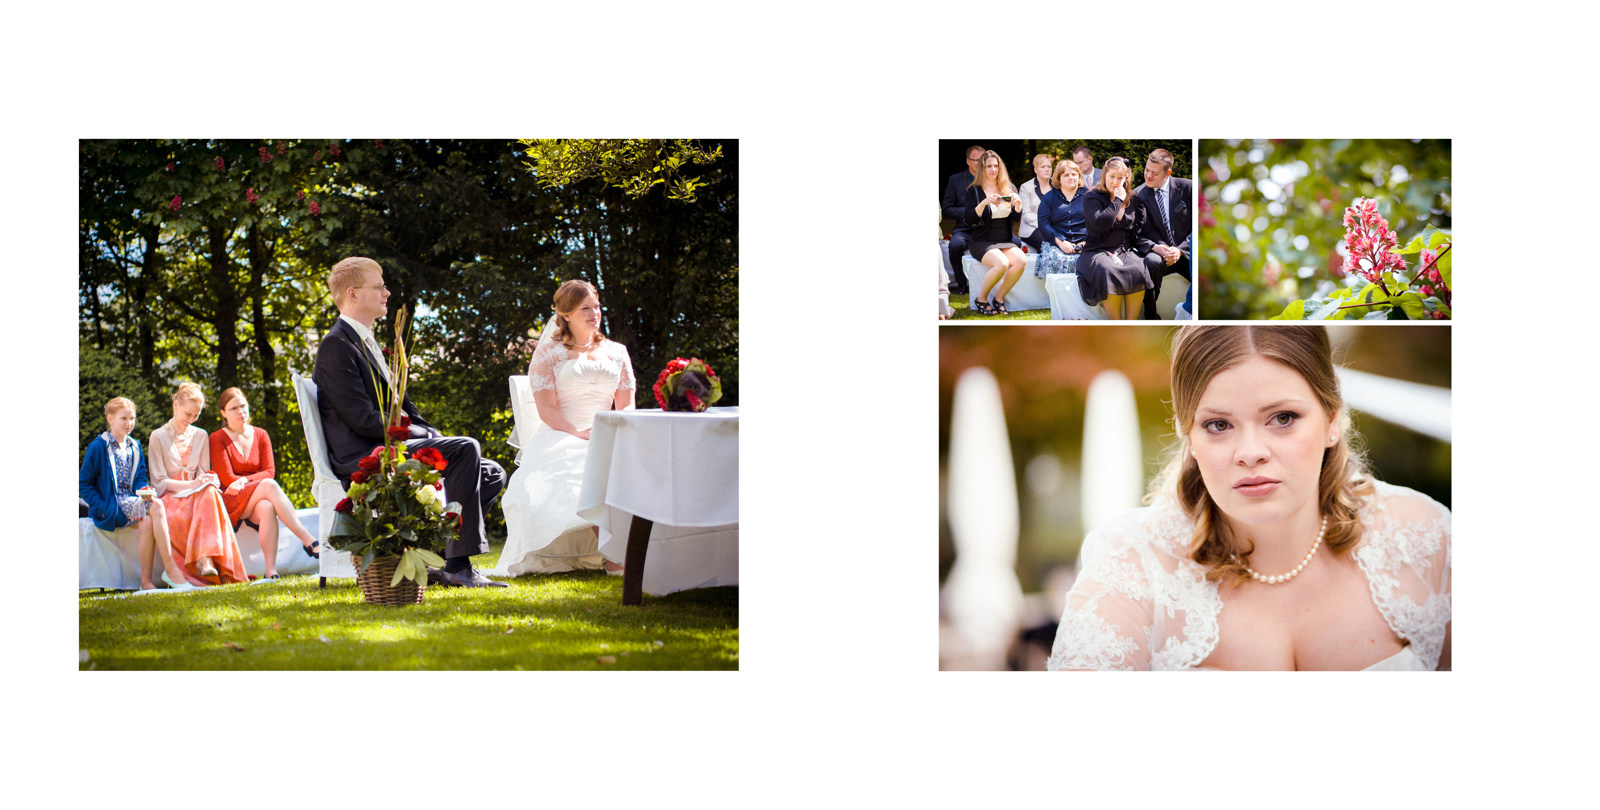 Wedding in the gardens of Schlosshotel Rettershof, Kelkheim